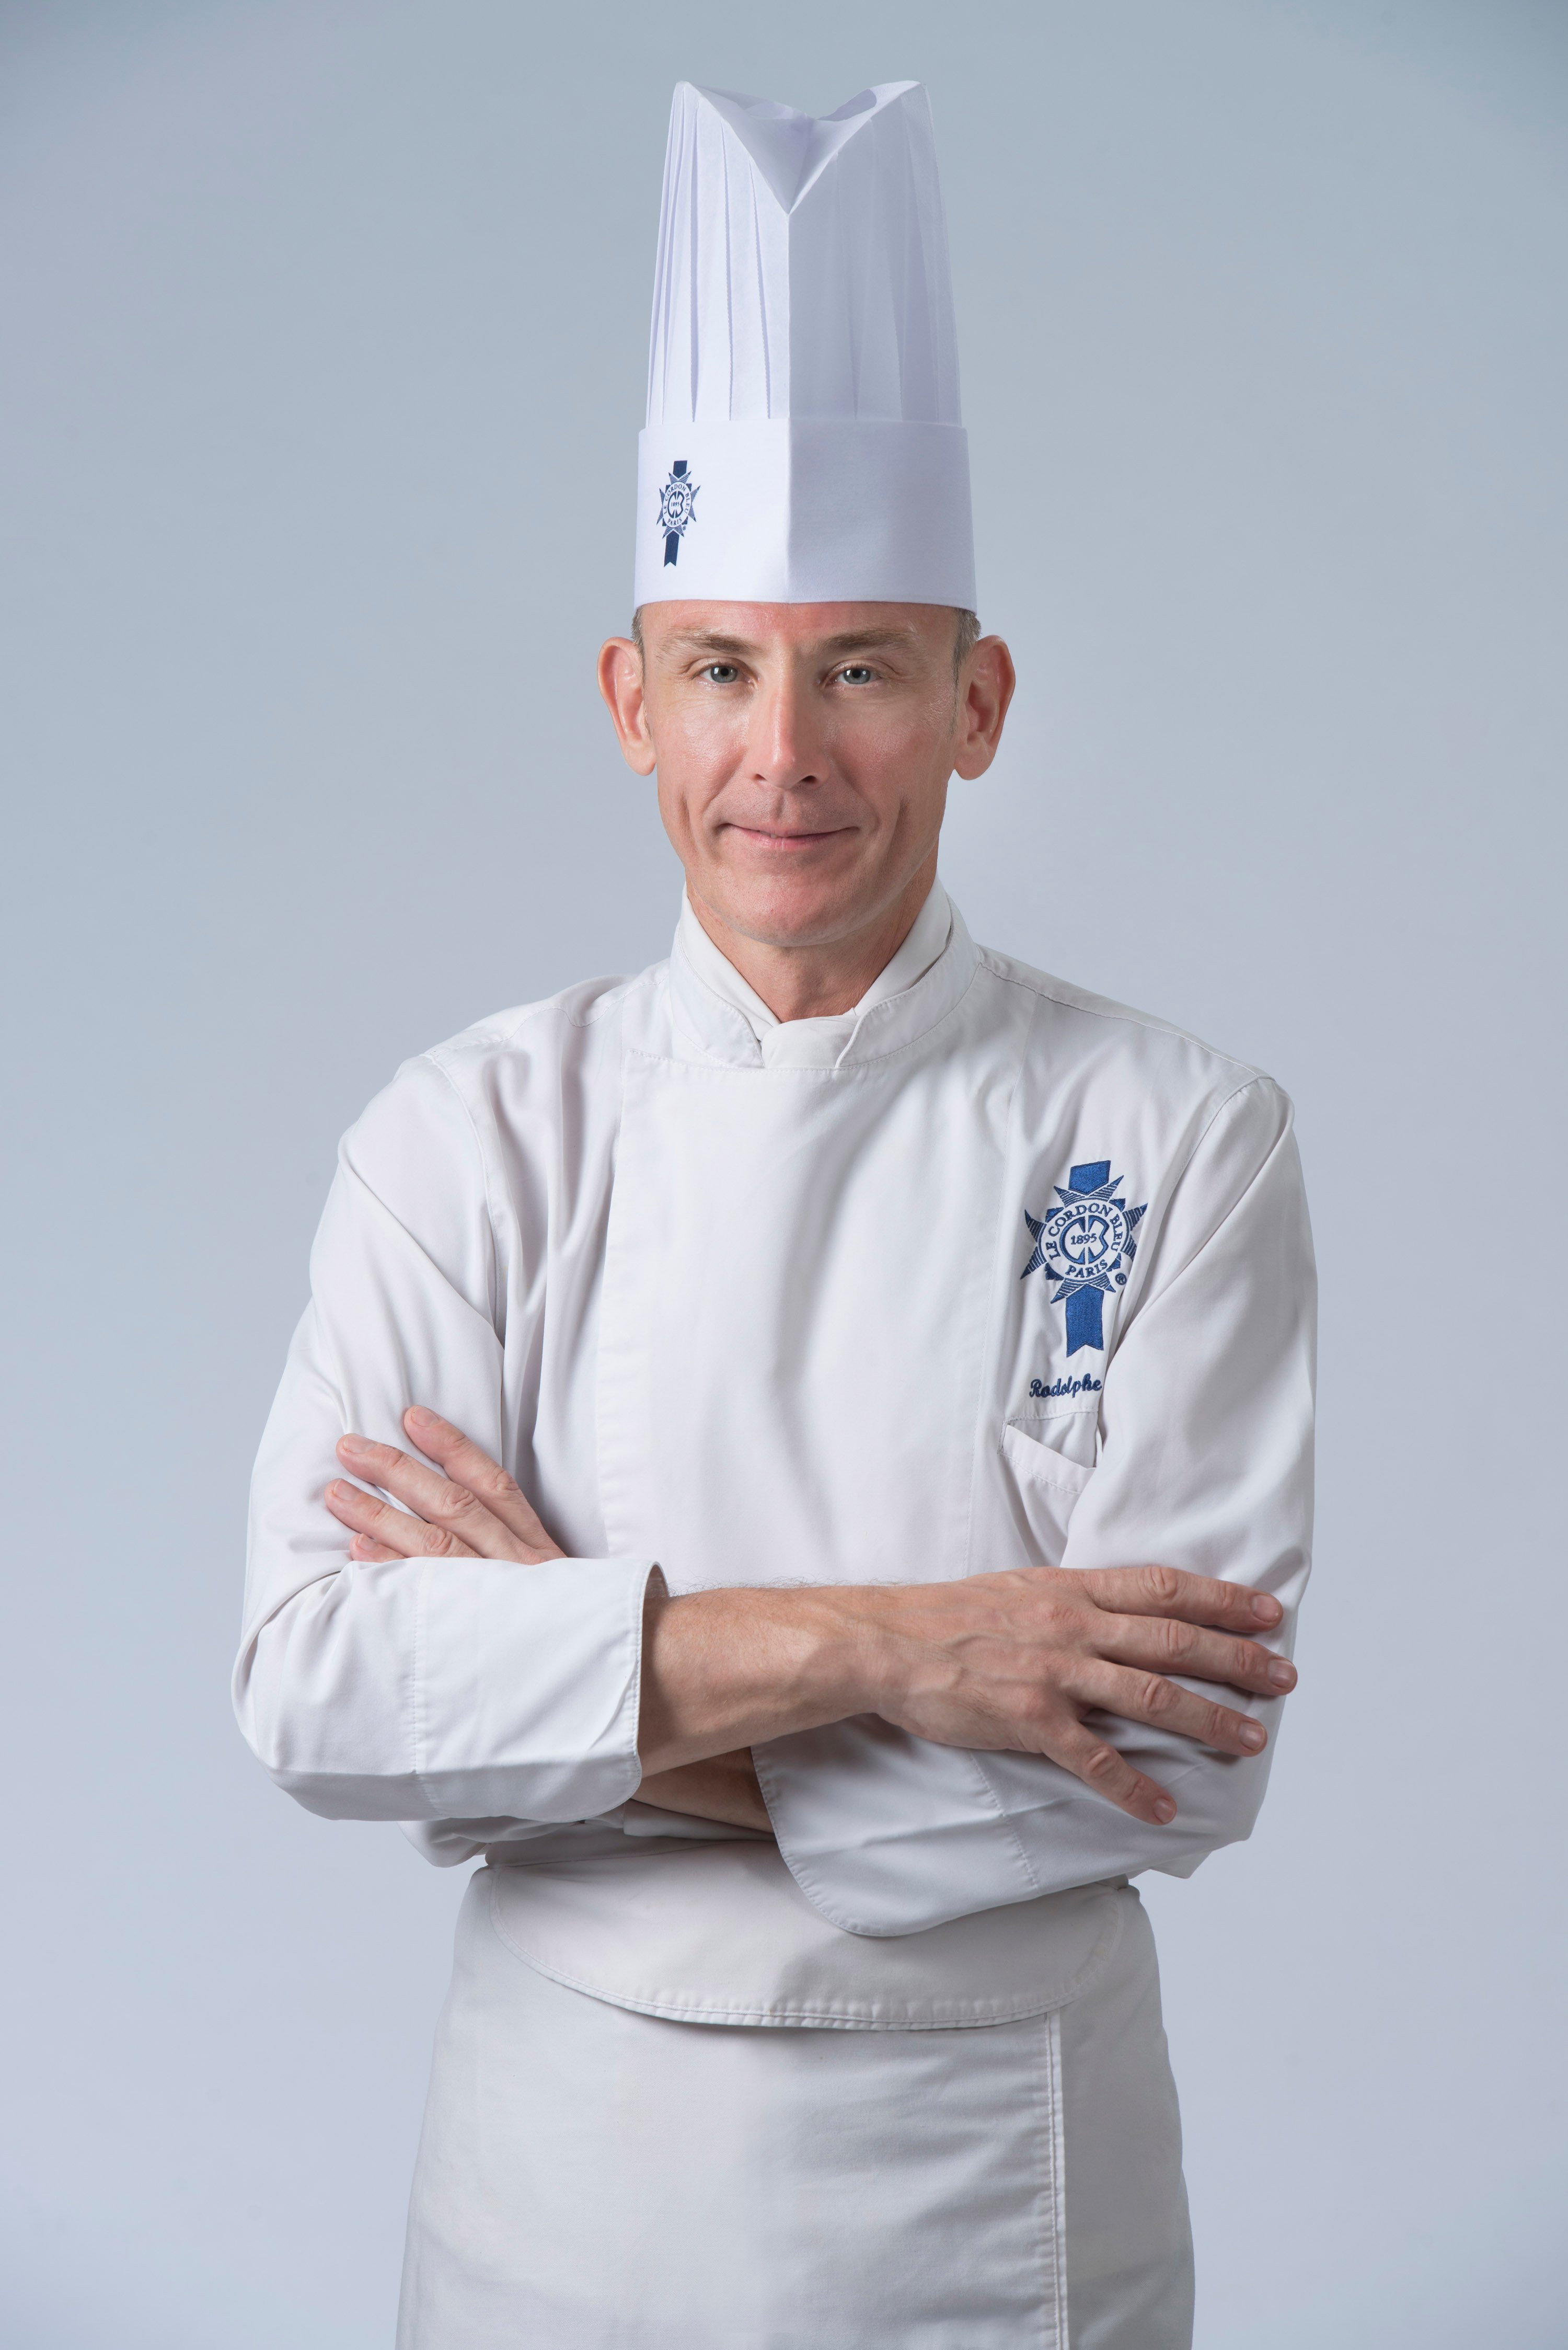 Chef Rodolphe Onno Technical Director